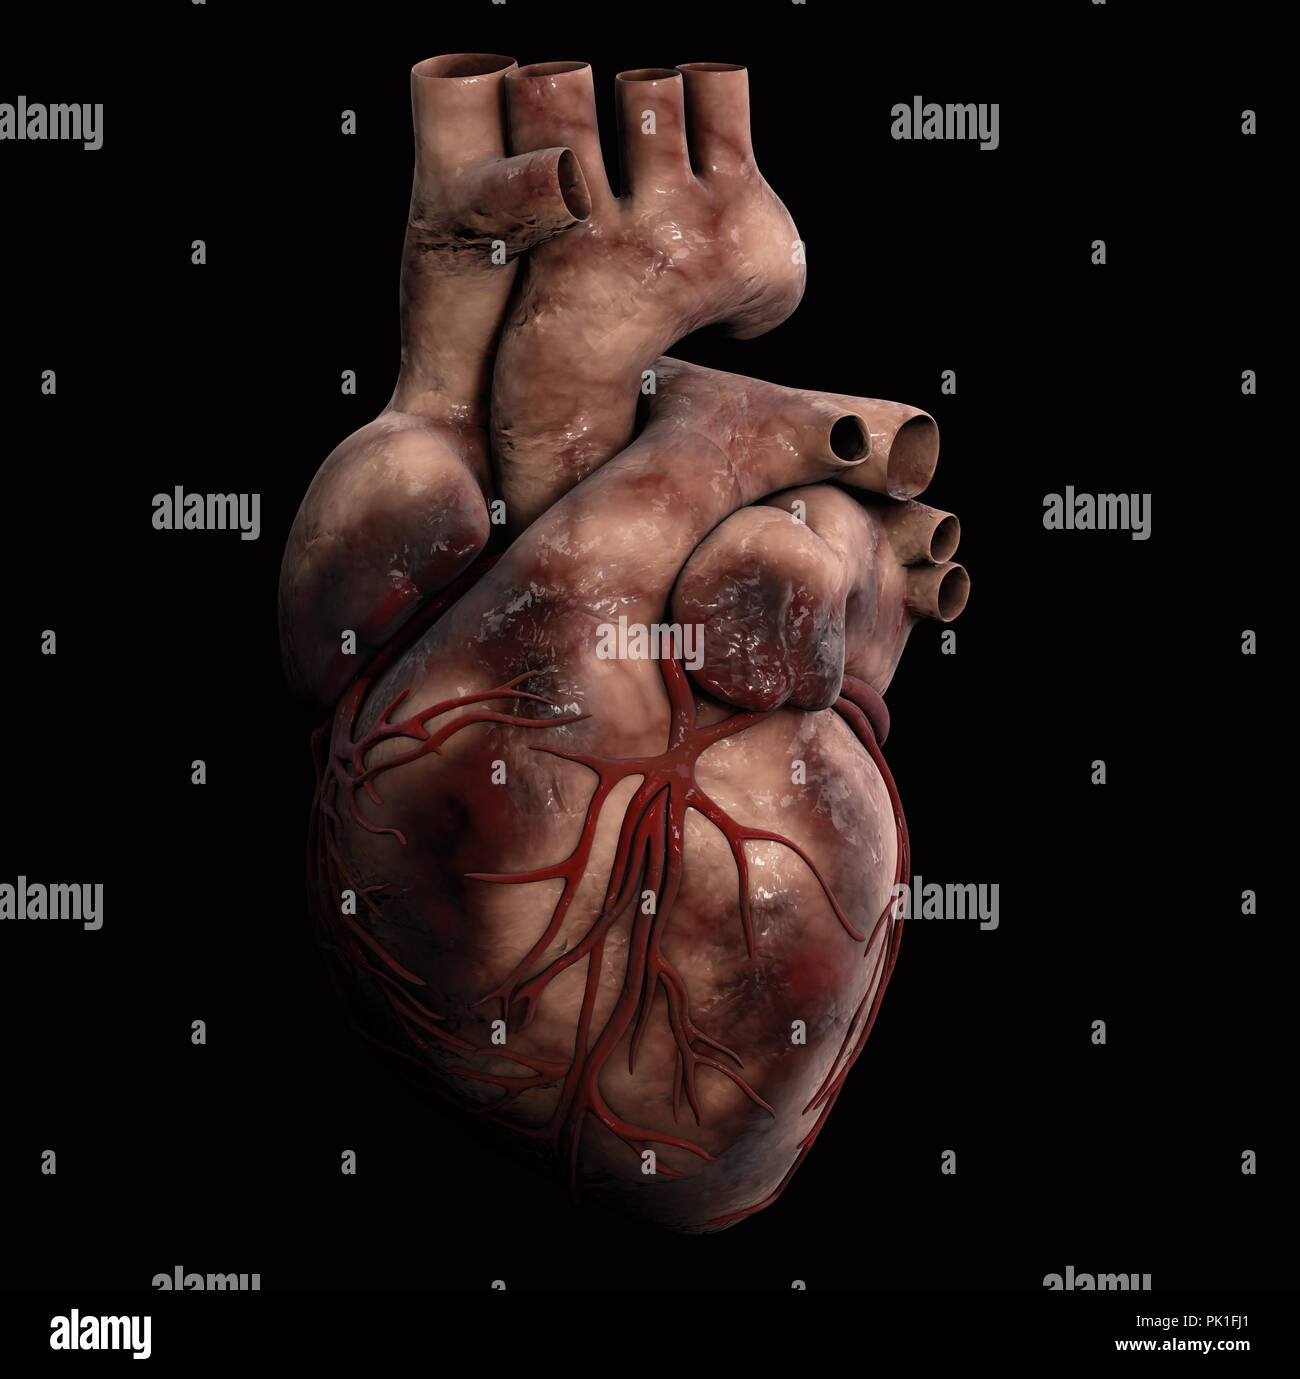 3d Human Body And Heart Anatomy Stock Photos & 3d Human Body And ...